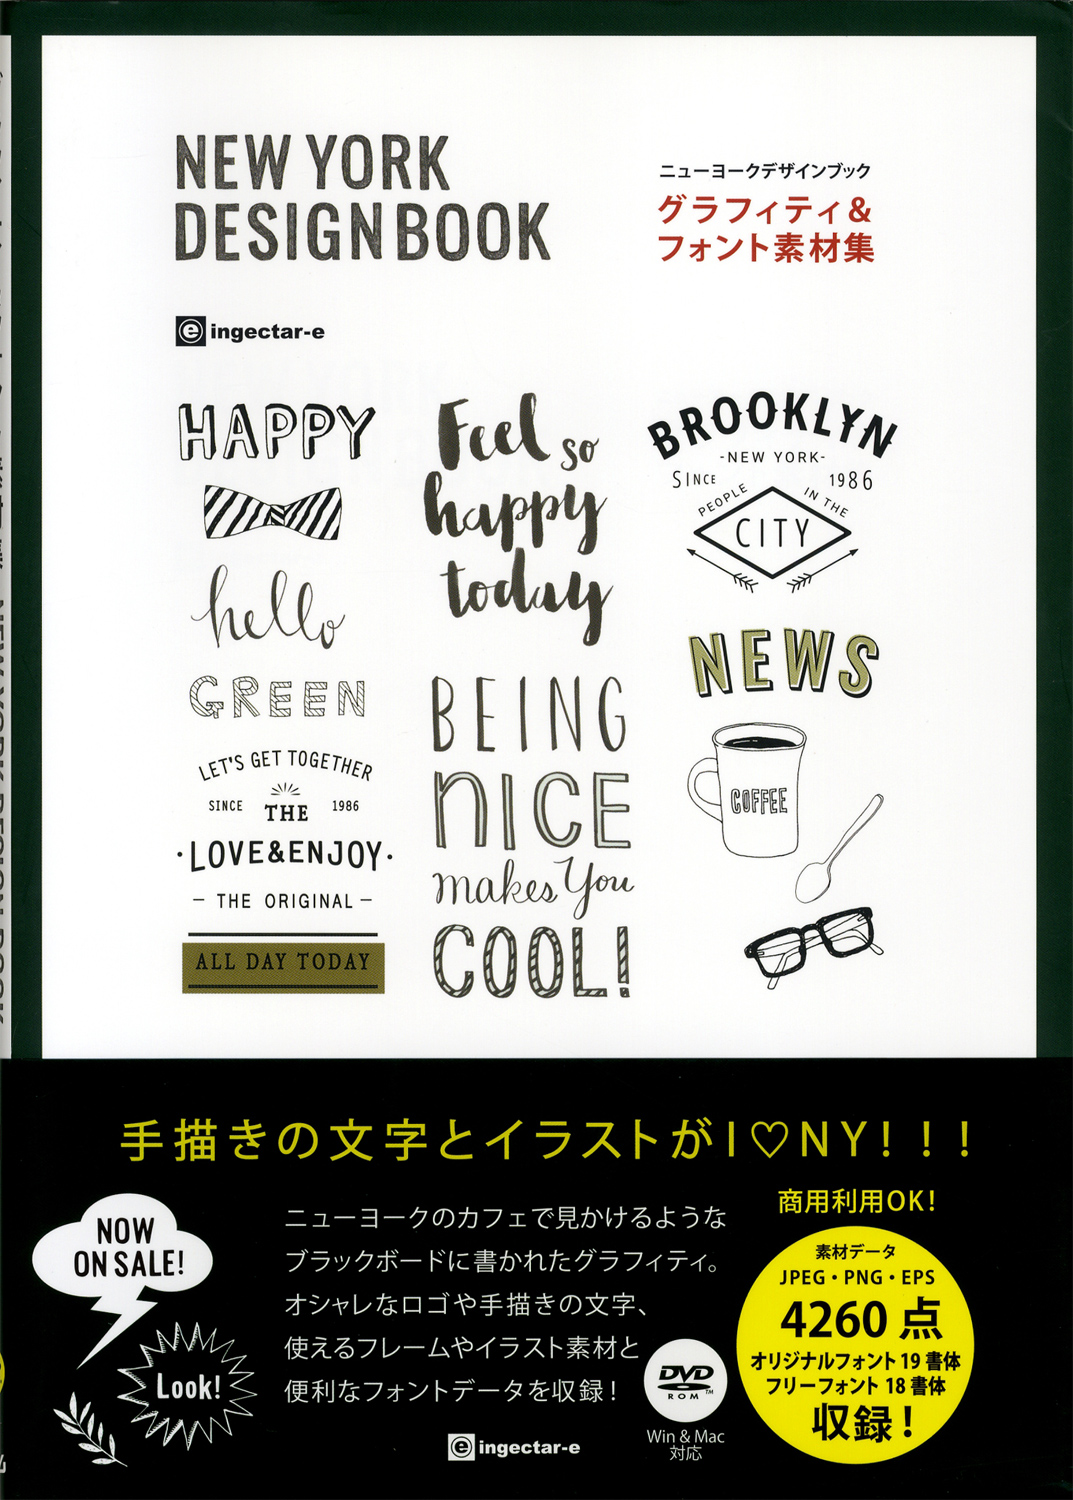 NEW YORK DESIGN BOOK グラフィティ&フォント素材集